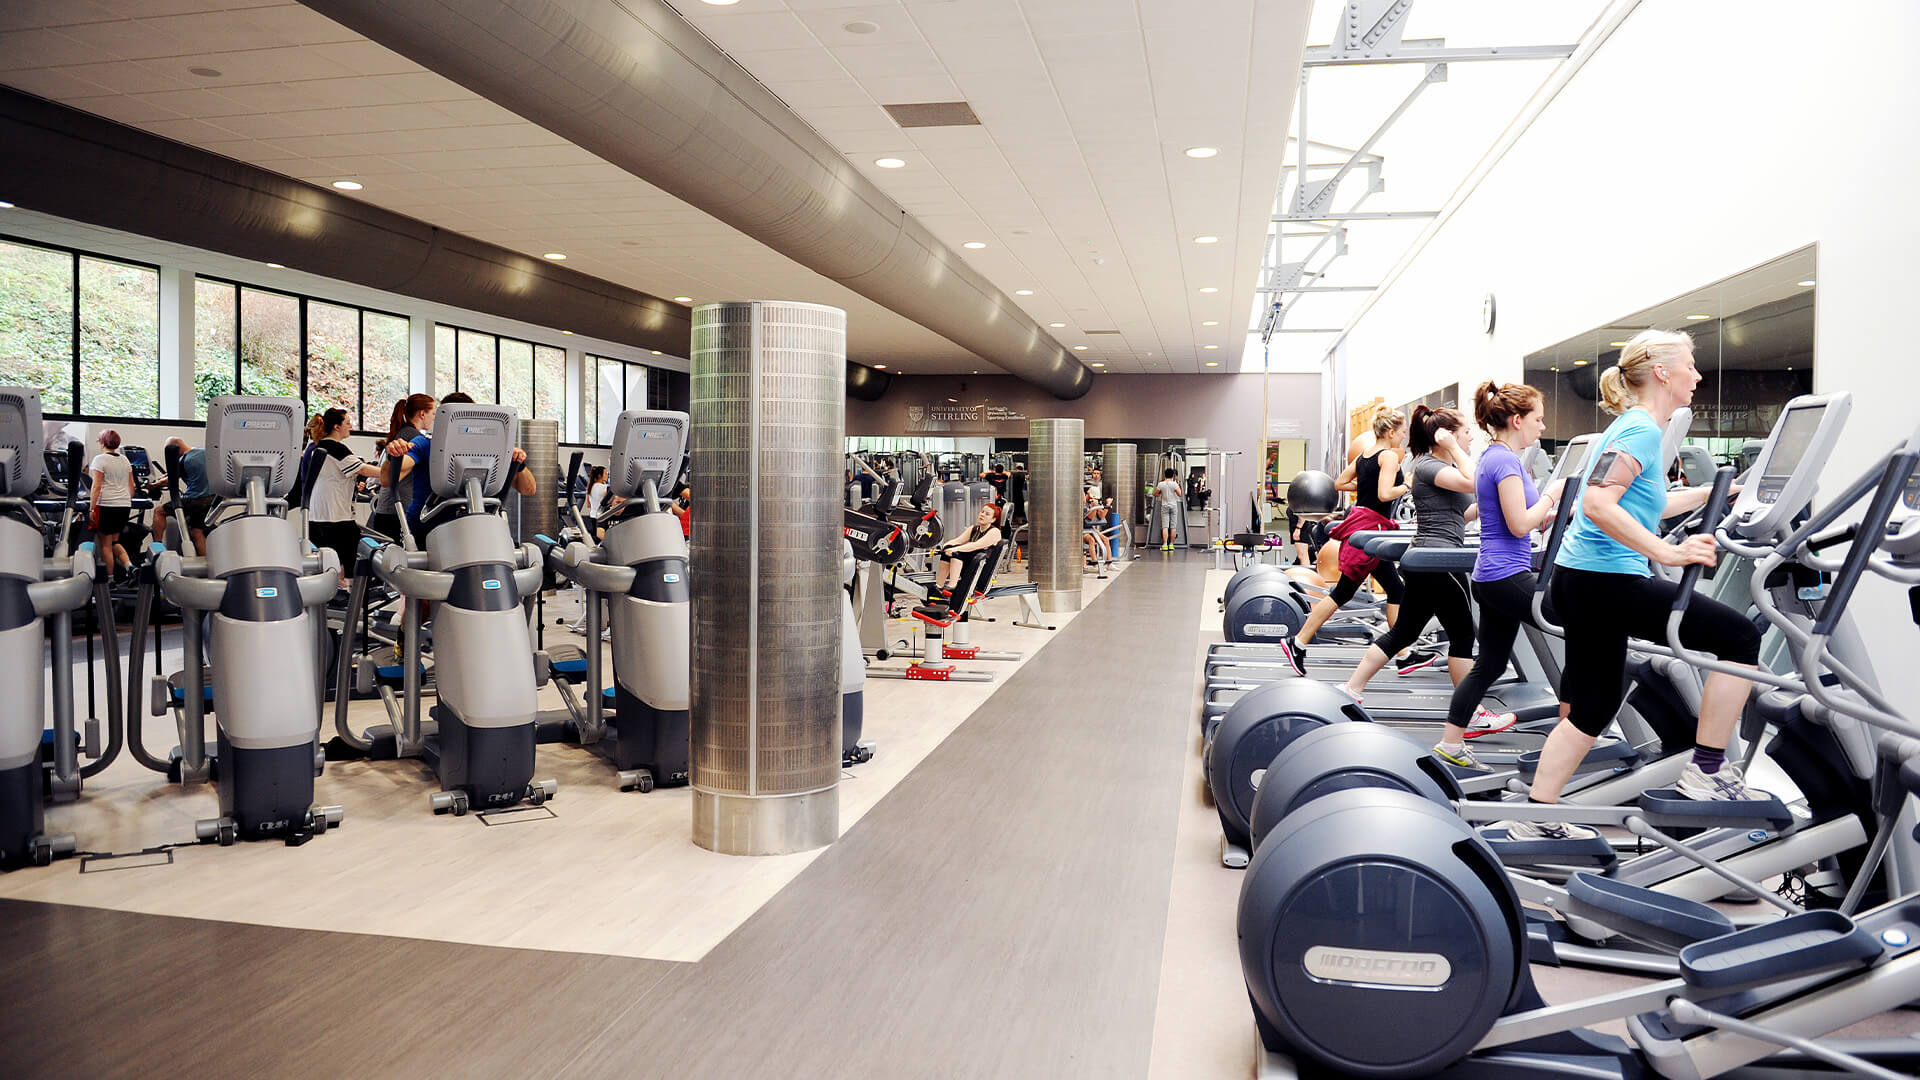 World-class sport and on-campus gym facilities at the University of Stirling